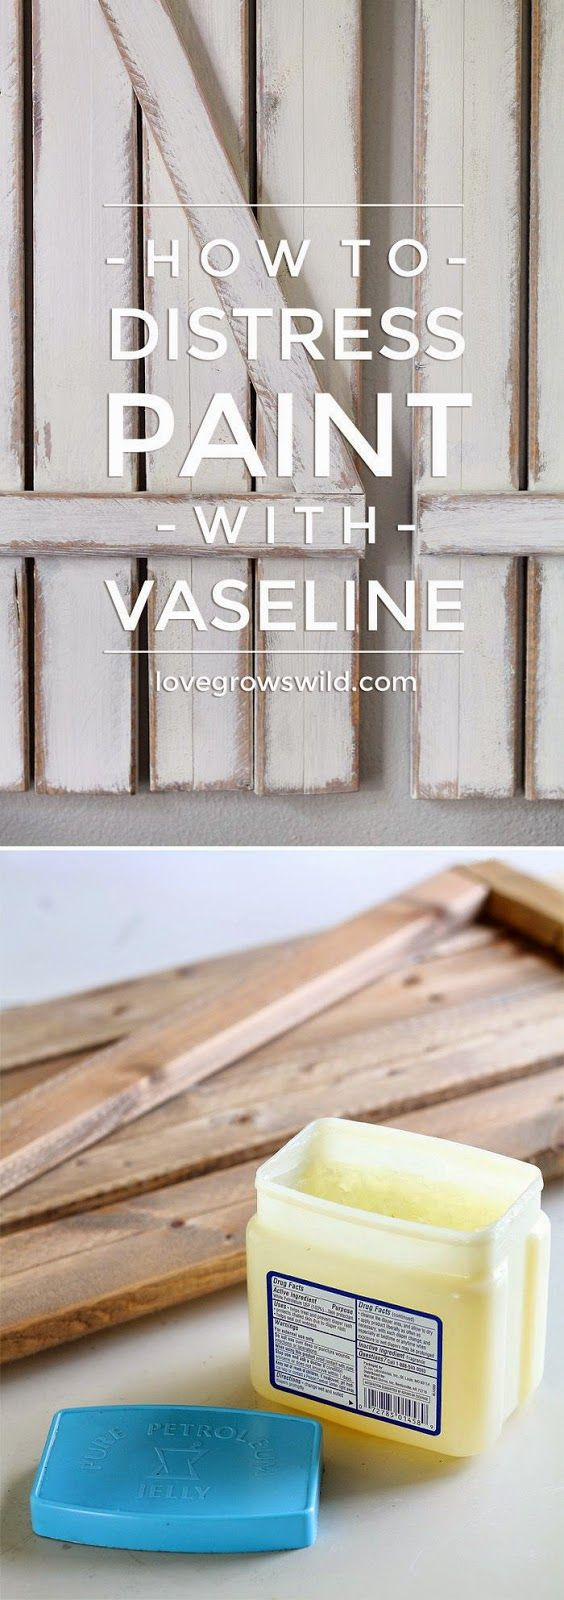 Craft Project Ideas: HOW TO DISTRESS PAINT WITH VASELINE